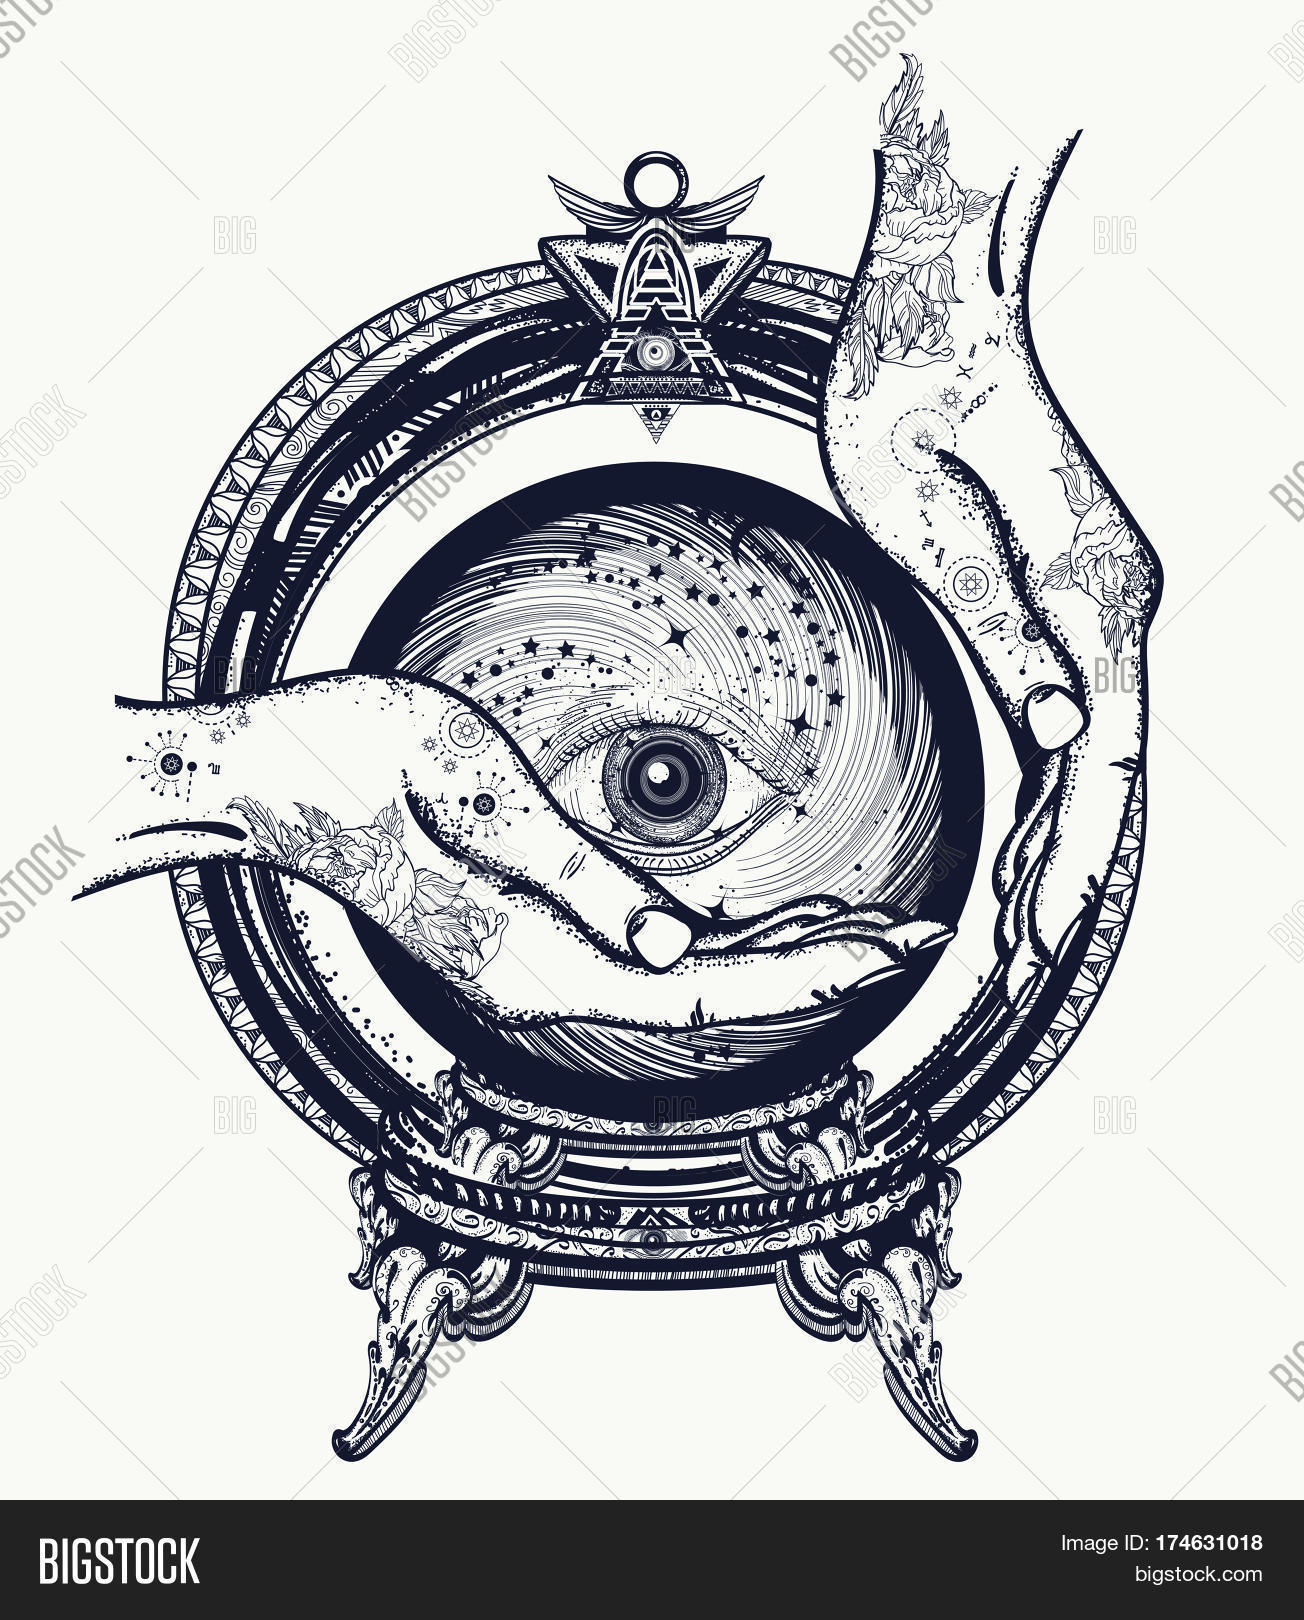 Fortune Teller Tattoo Vector & Photo (Free Trial) | Bigstock